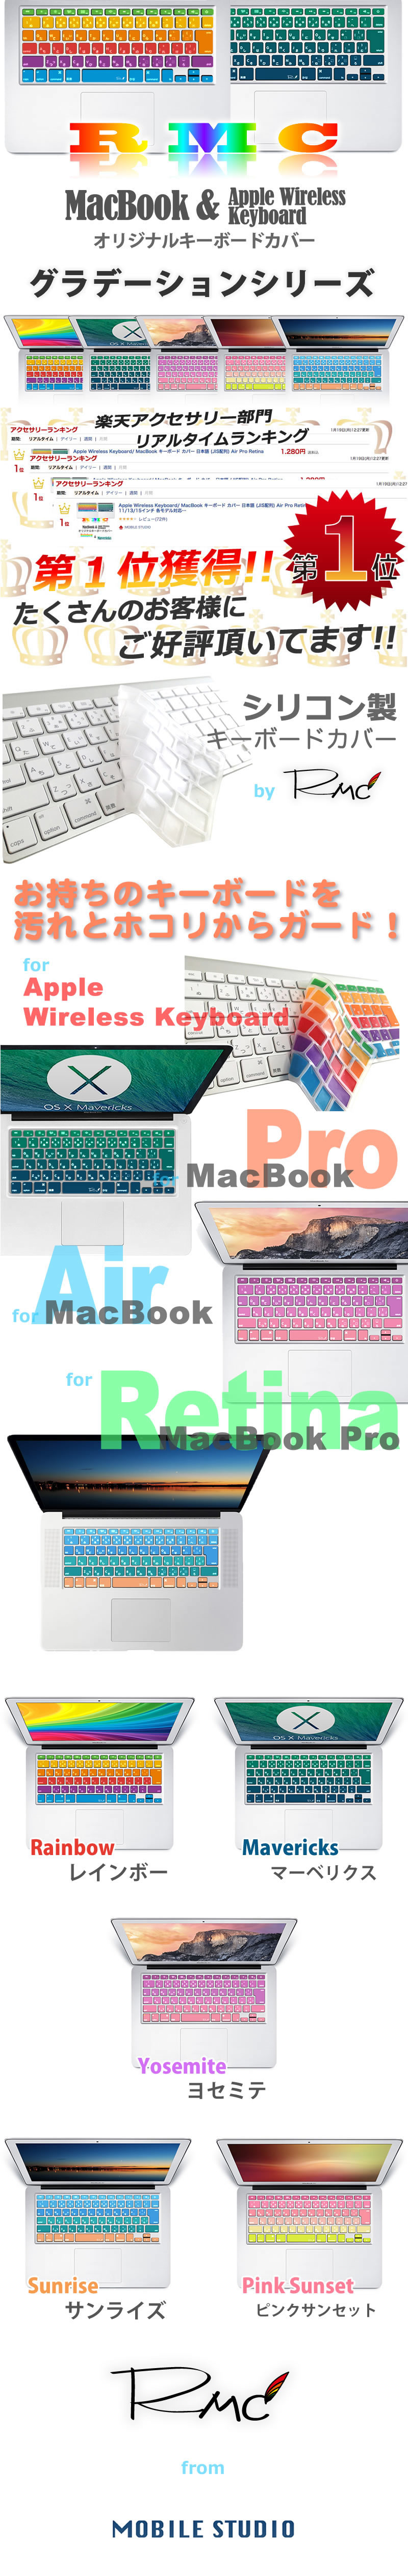 RMC���ꥸ�ʥ� macbook mac �����ܡ��ɥ��С�